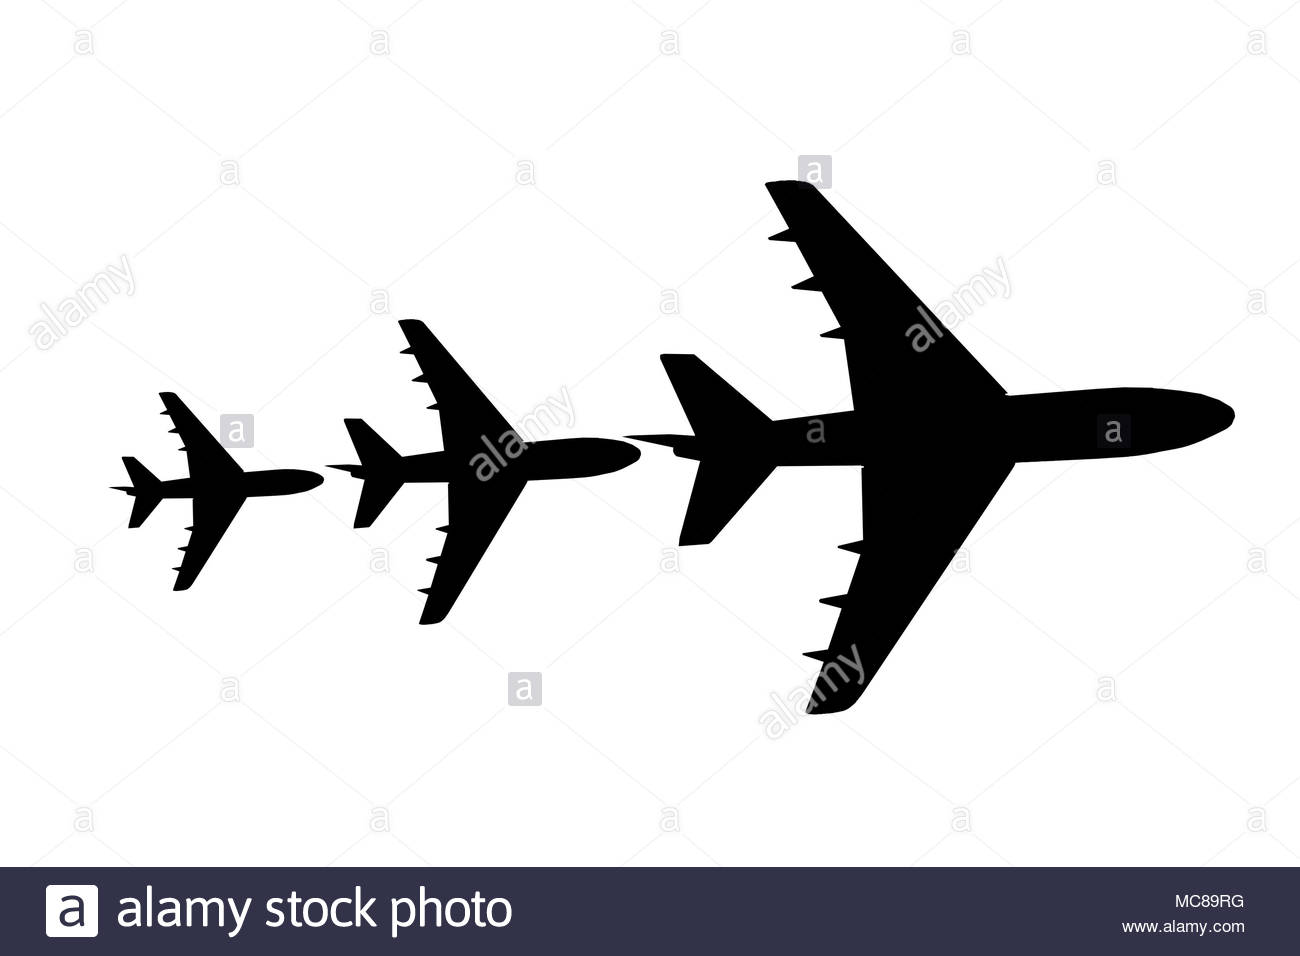 Airplane on white background - Stock Image